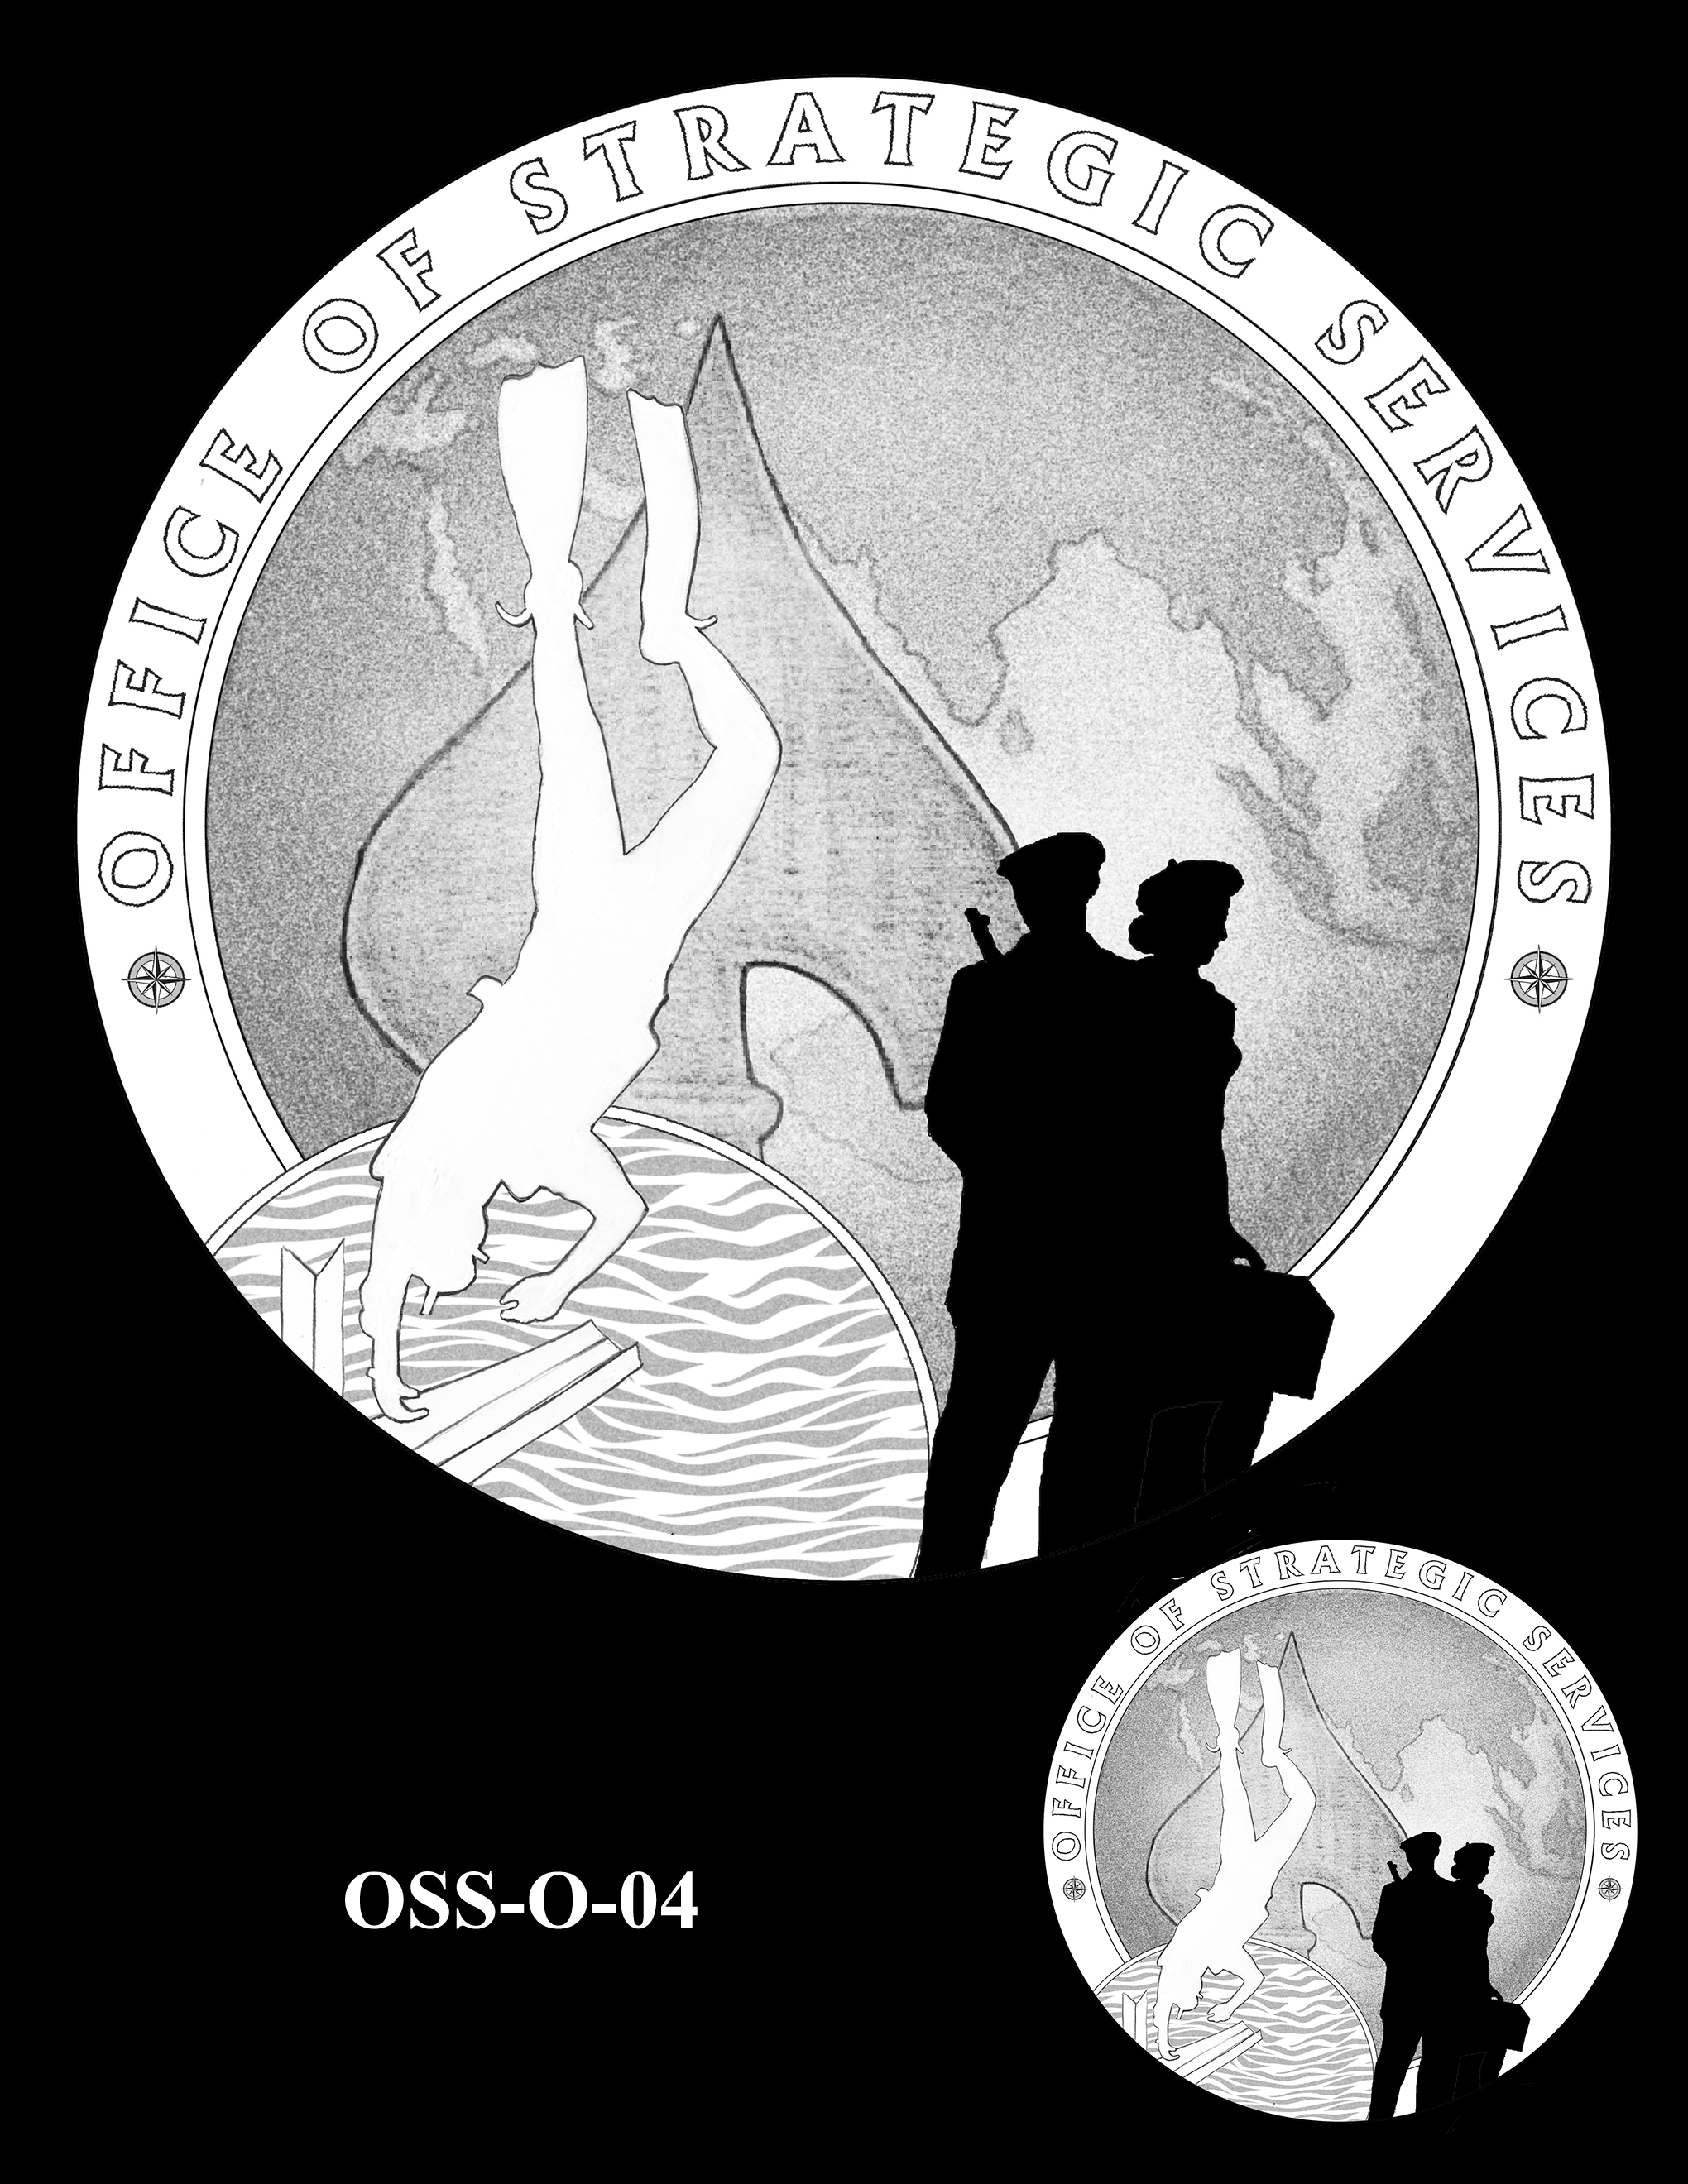 OSS-O-04 -- Office of Strategic Services Congressional Gold Medal